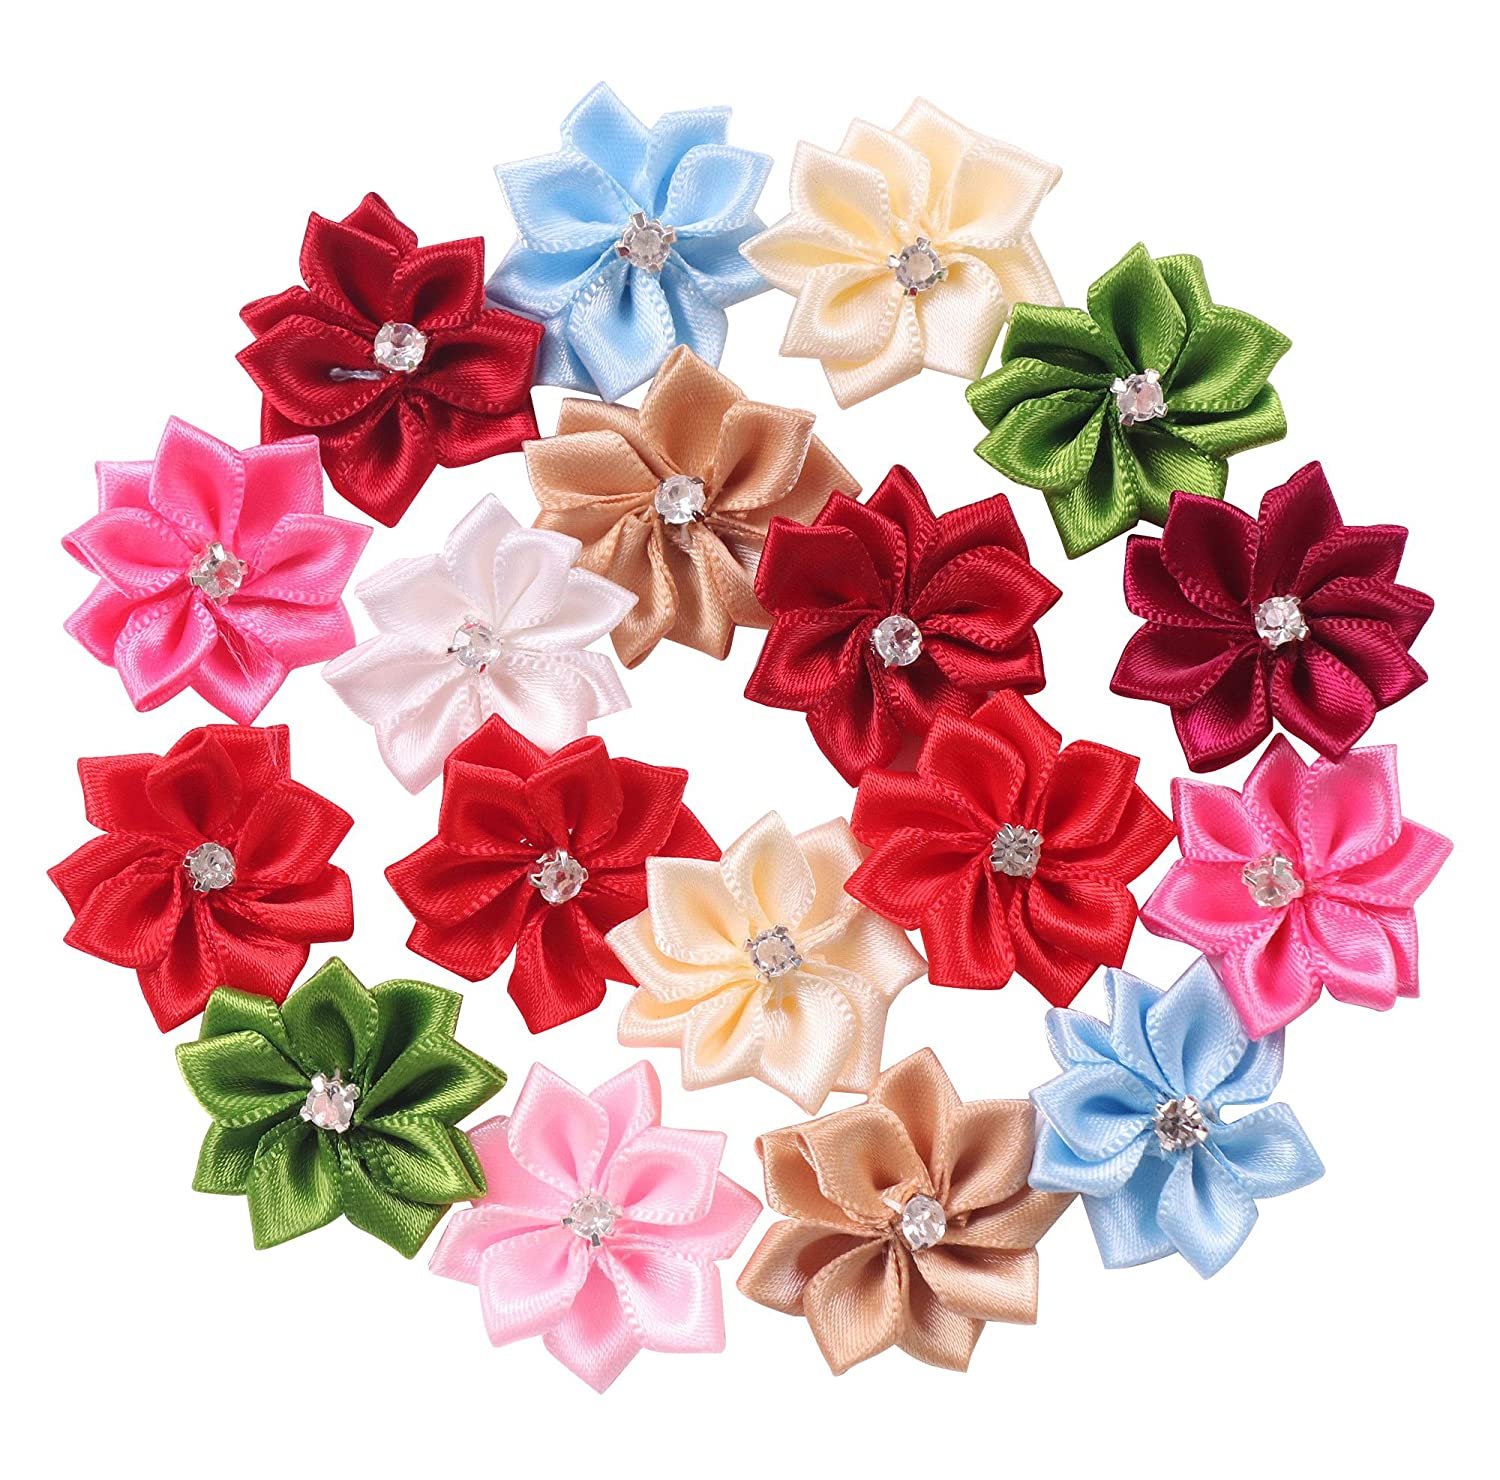 YAKA 50Pcs Satin Ribbon Flowers Bows Rose W/Rhinestone Appliques Birthday Party Wedding Decorations DIY Project Craft 1.1inch(Multi-color) s32